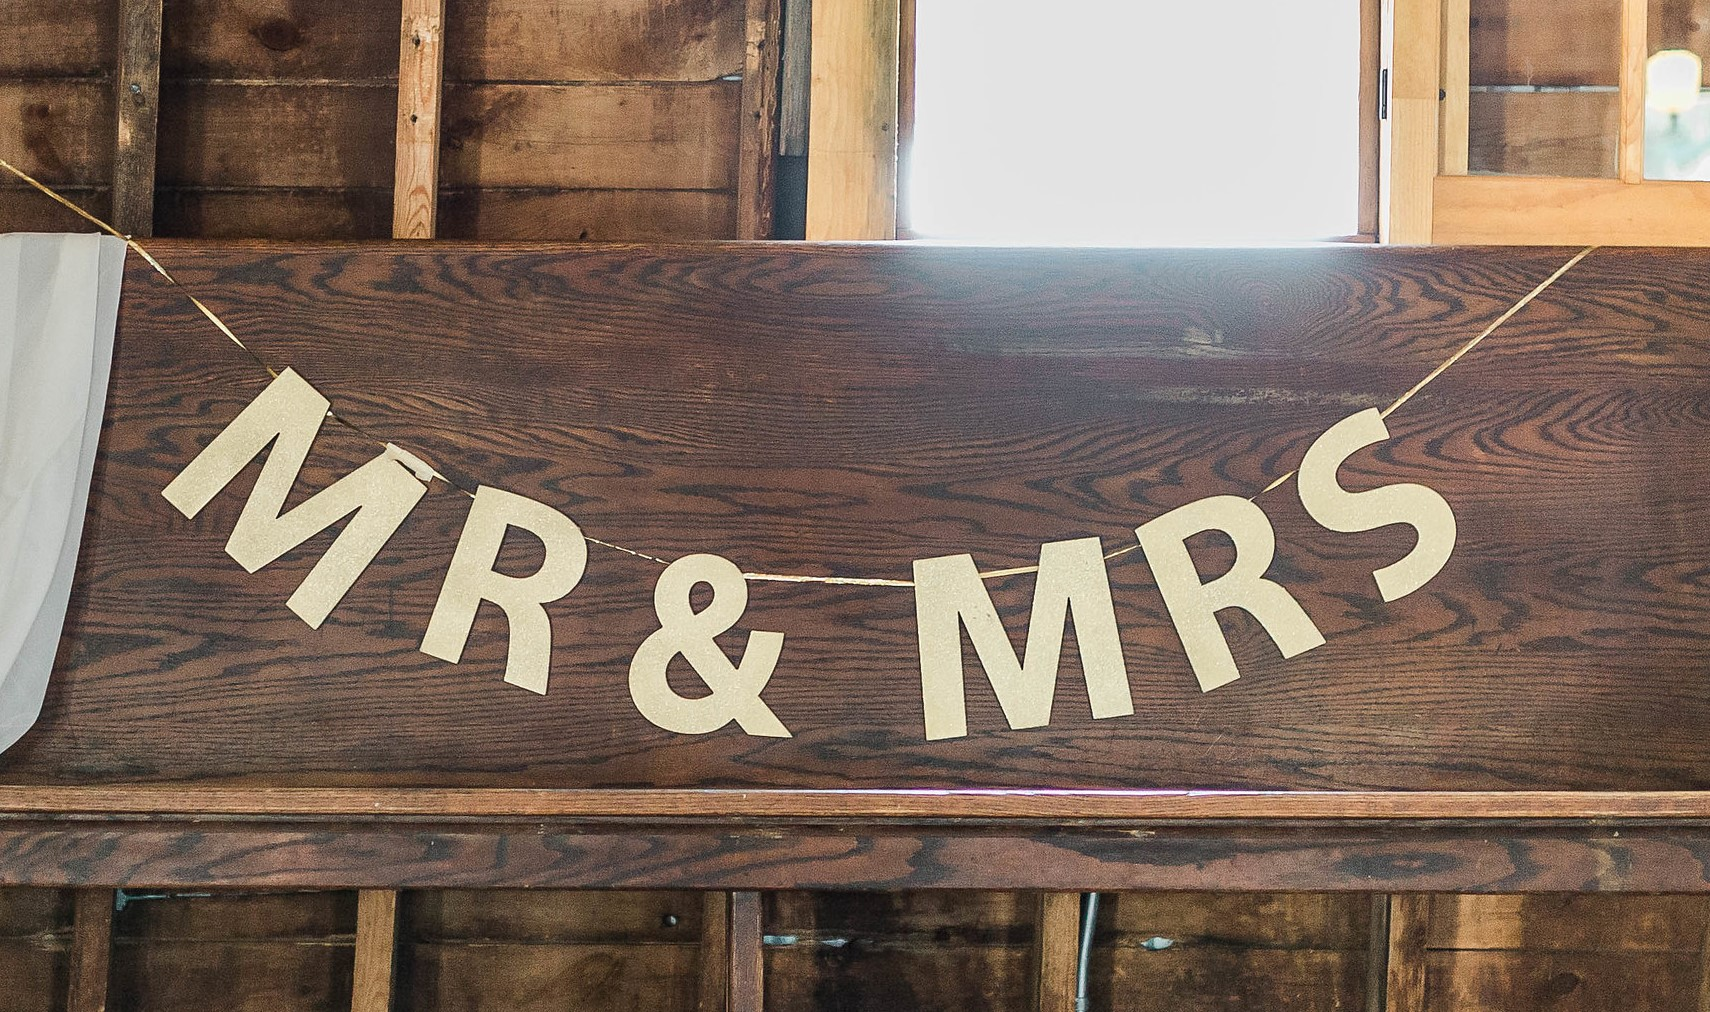 MR&MRS Gold Sign  length measures approx. 4 feet individual letters approx. 8 inches high >>>$5.00<<<